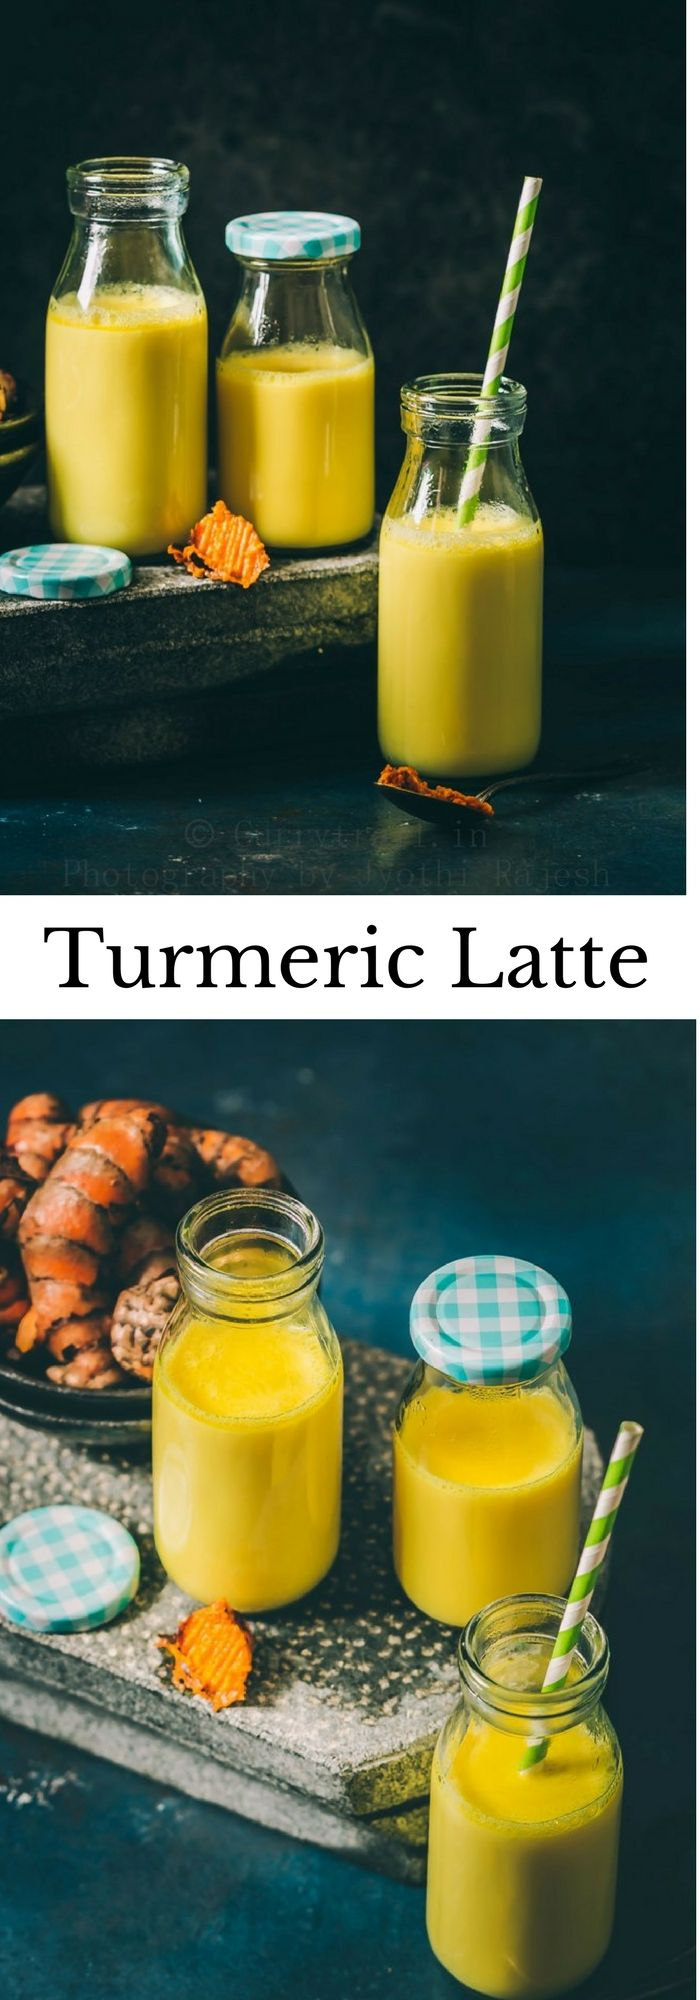 Turmeric Latte | Haldi Doodh Turmeric powder/fresh turmeric mixed in hot milk, and a dash of pepper powder along with honey is the best home remedy you can rely on for immediate relief from cough and congestion. #latte #turmericlatte #homeremedy #coughremedies #homemademedicine #medicine